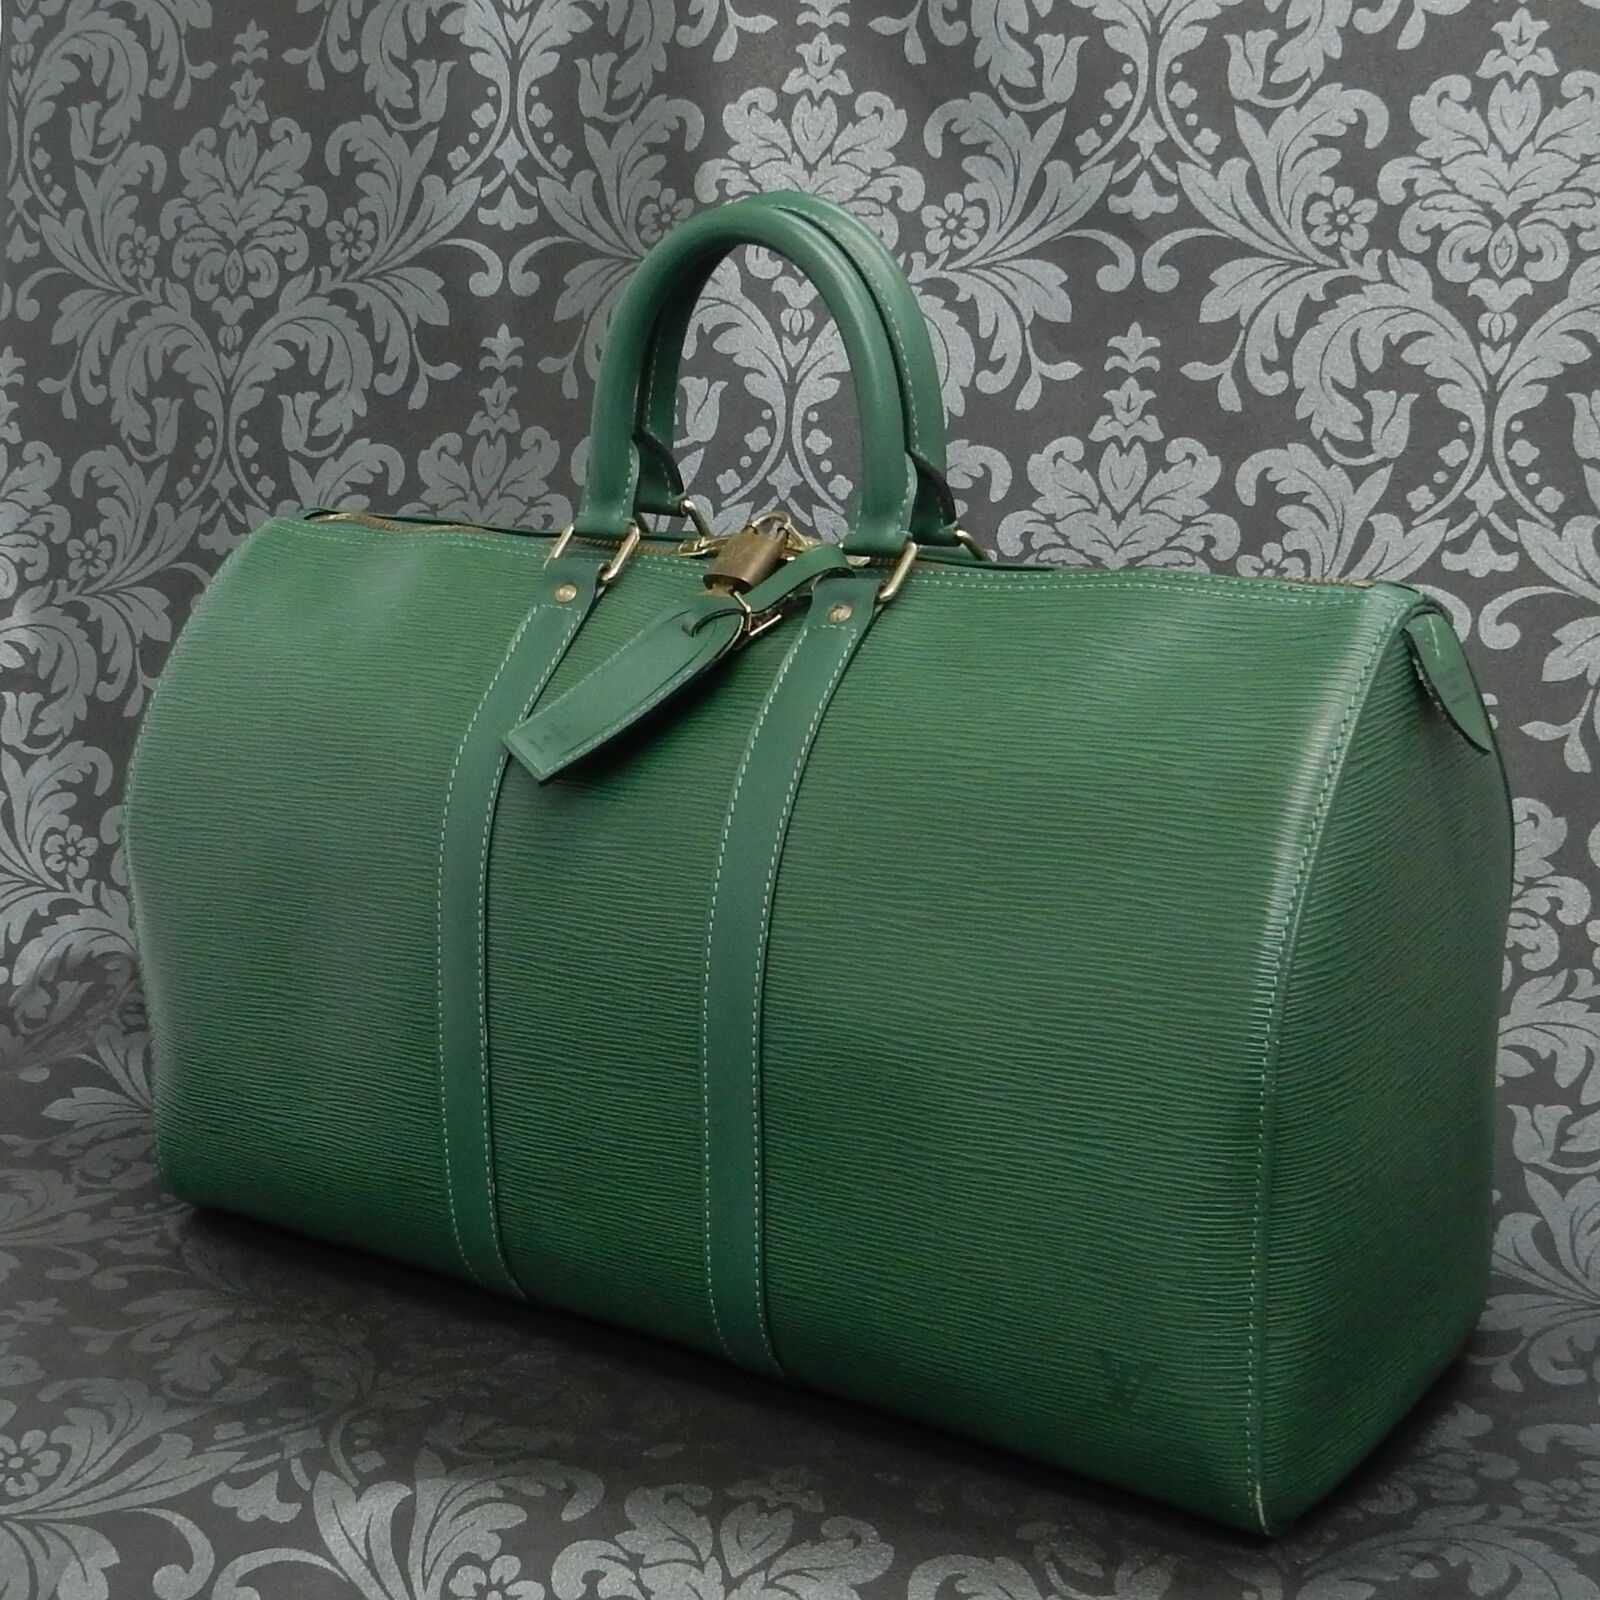 Rise-on LOUIS VUITTON EPI KEEPALL 45 Green Travel Bag #13 t